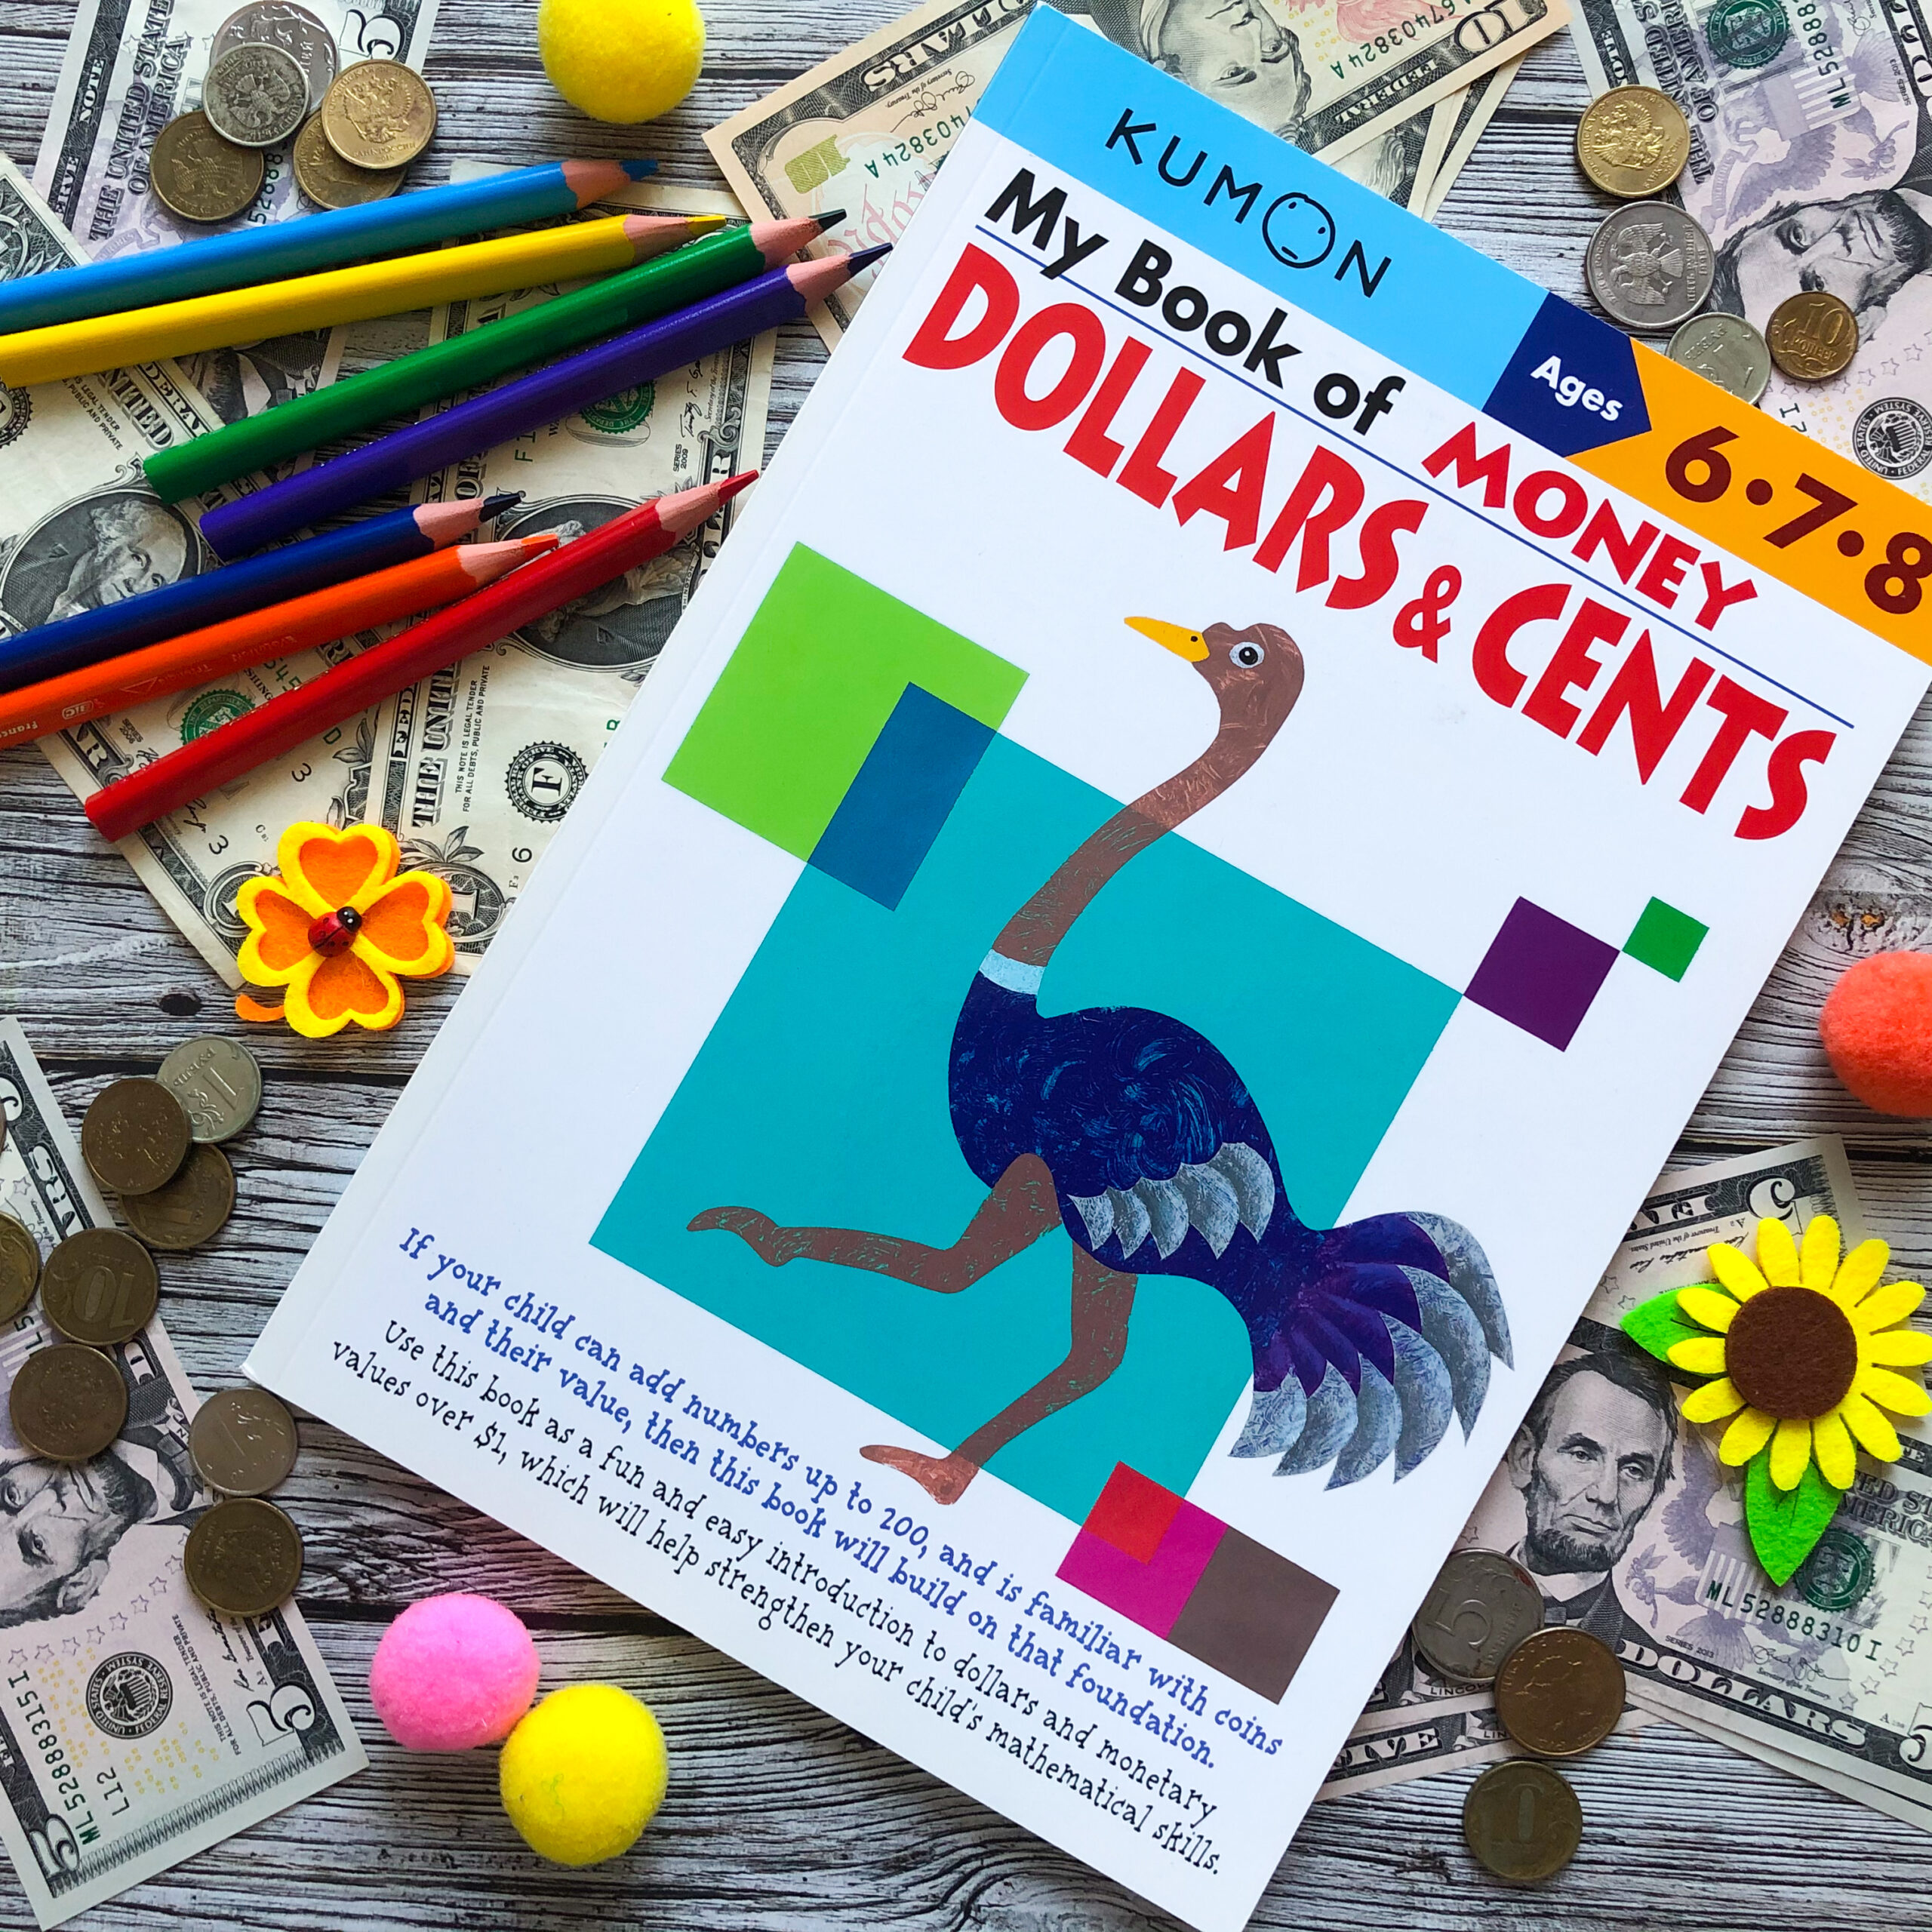 My Book of Money: Dollars & Cents, 6-8 1